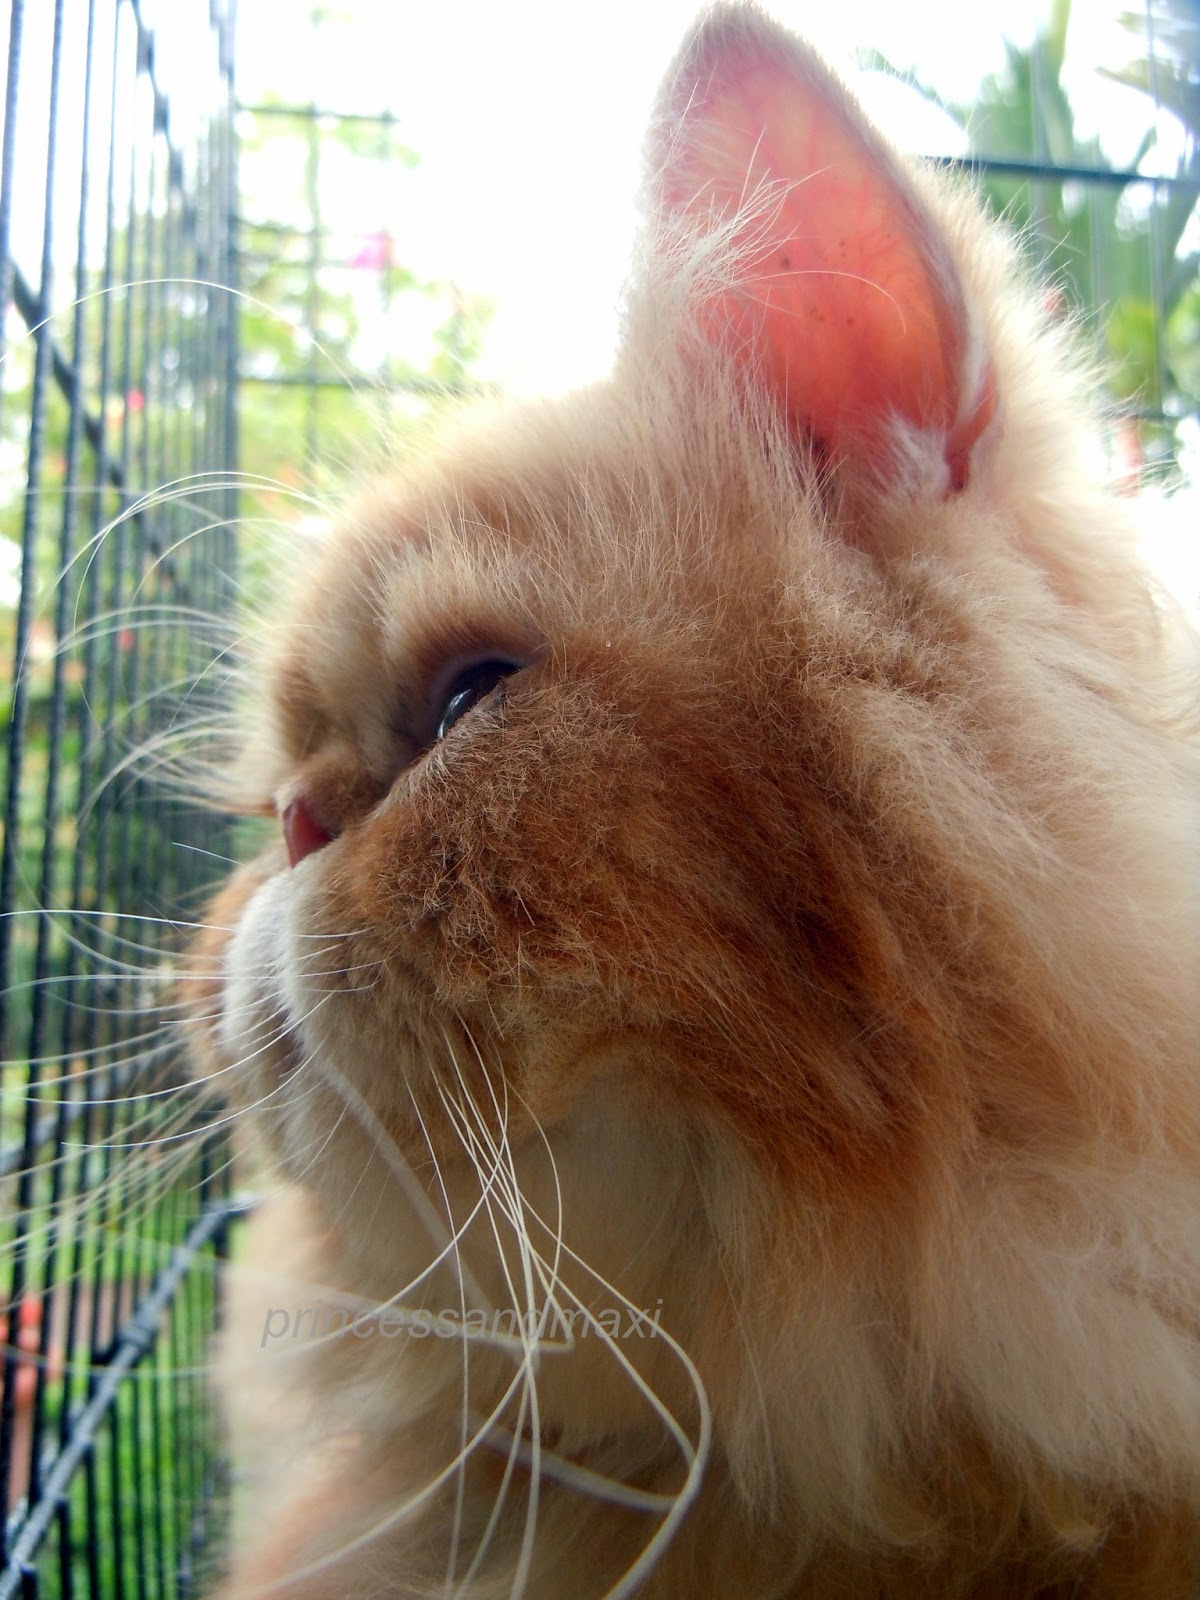 Squishy Nose Cat : MUSINGS OF A CAT: A TRIBUTE TO MAXI, ANGEL AND SAD TIMES HERE